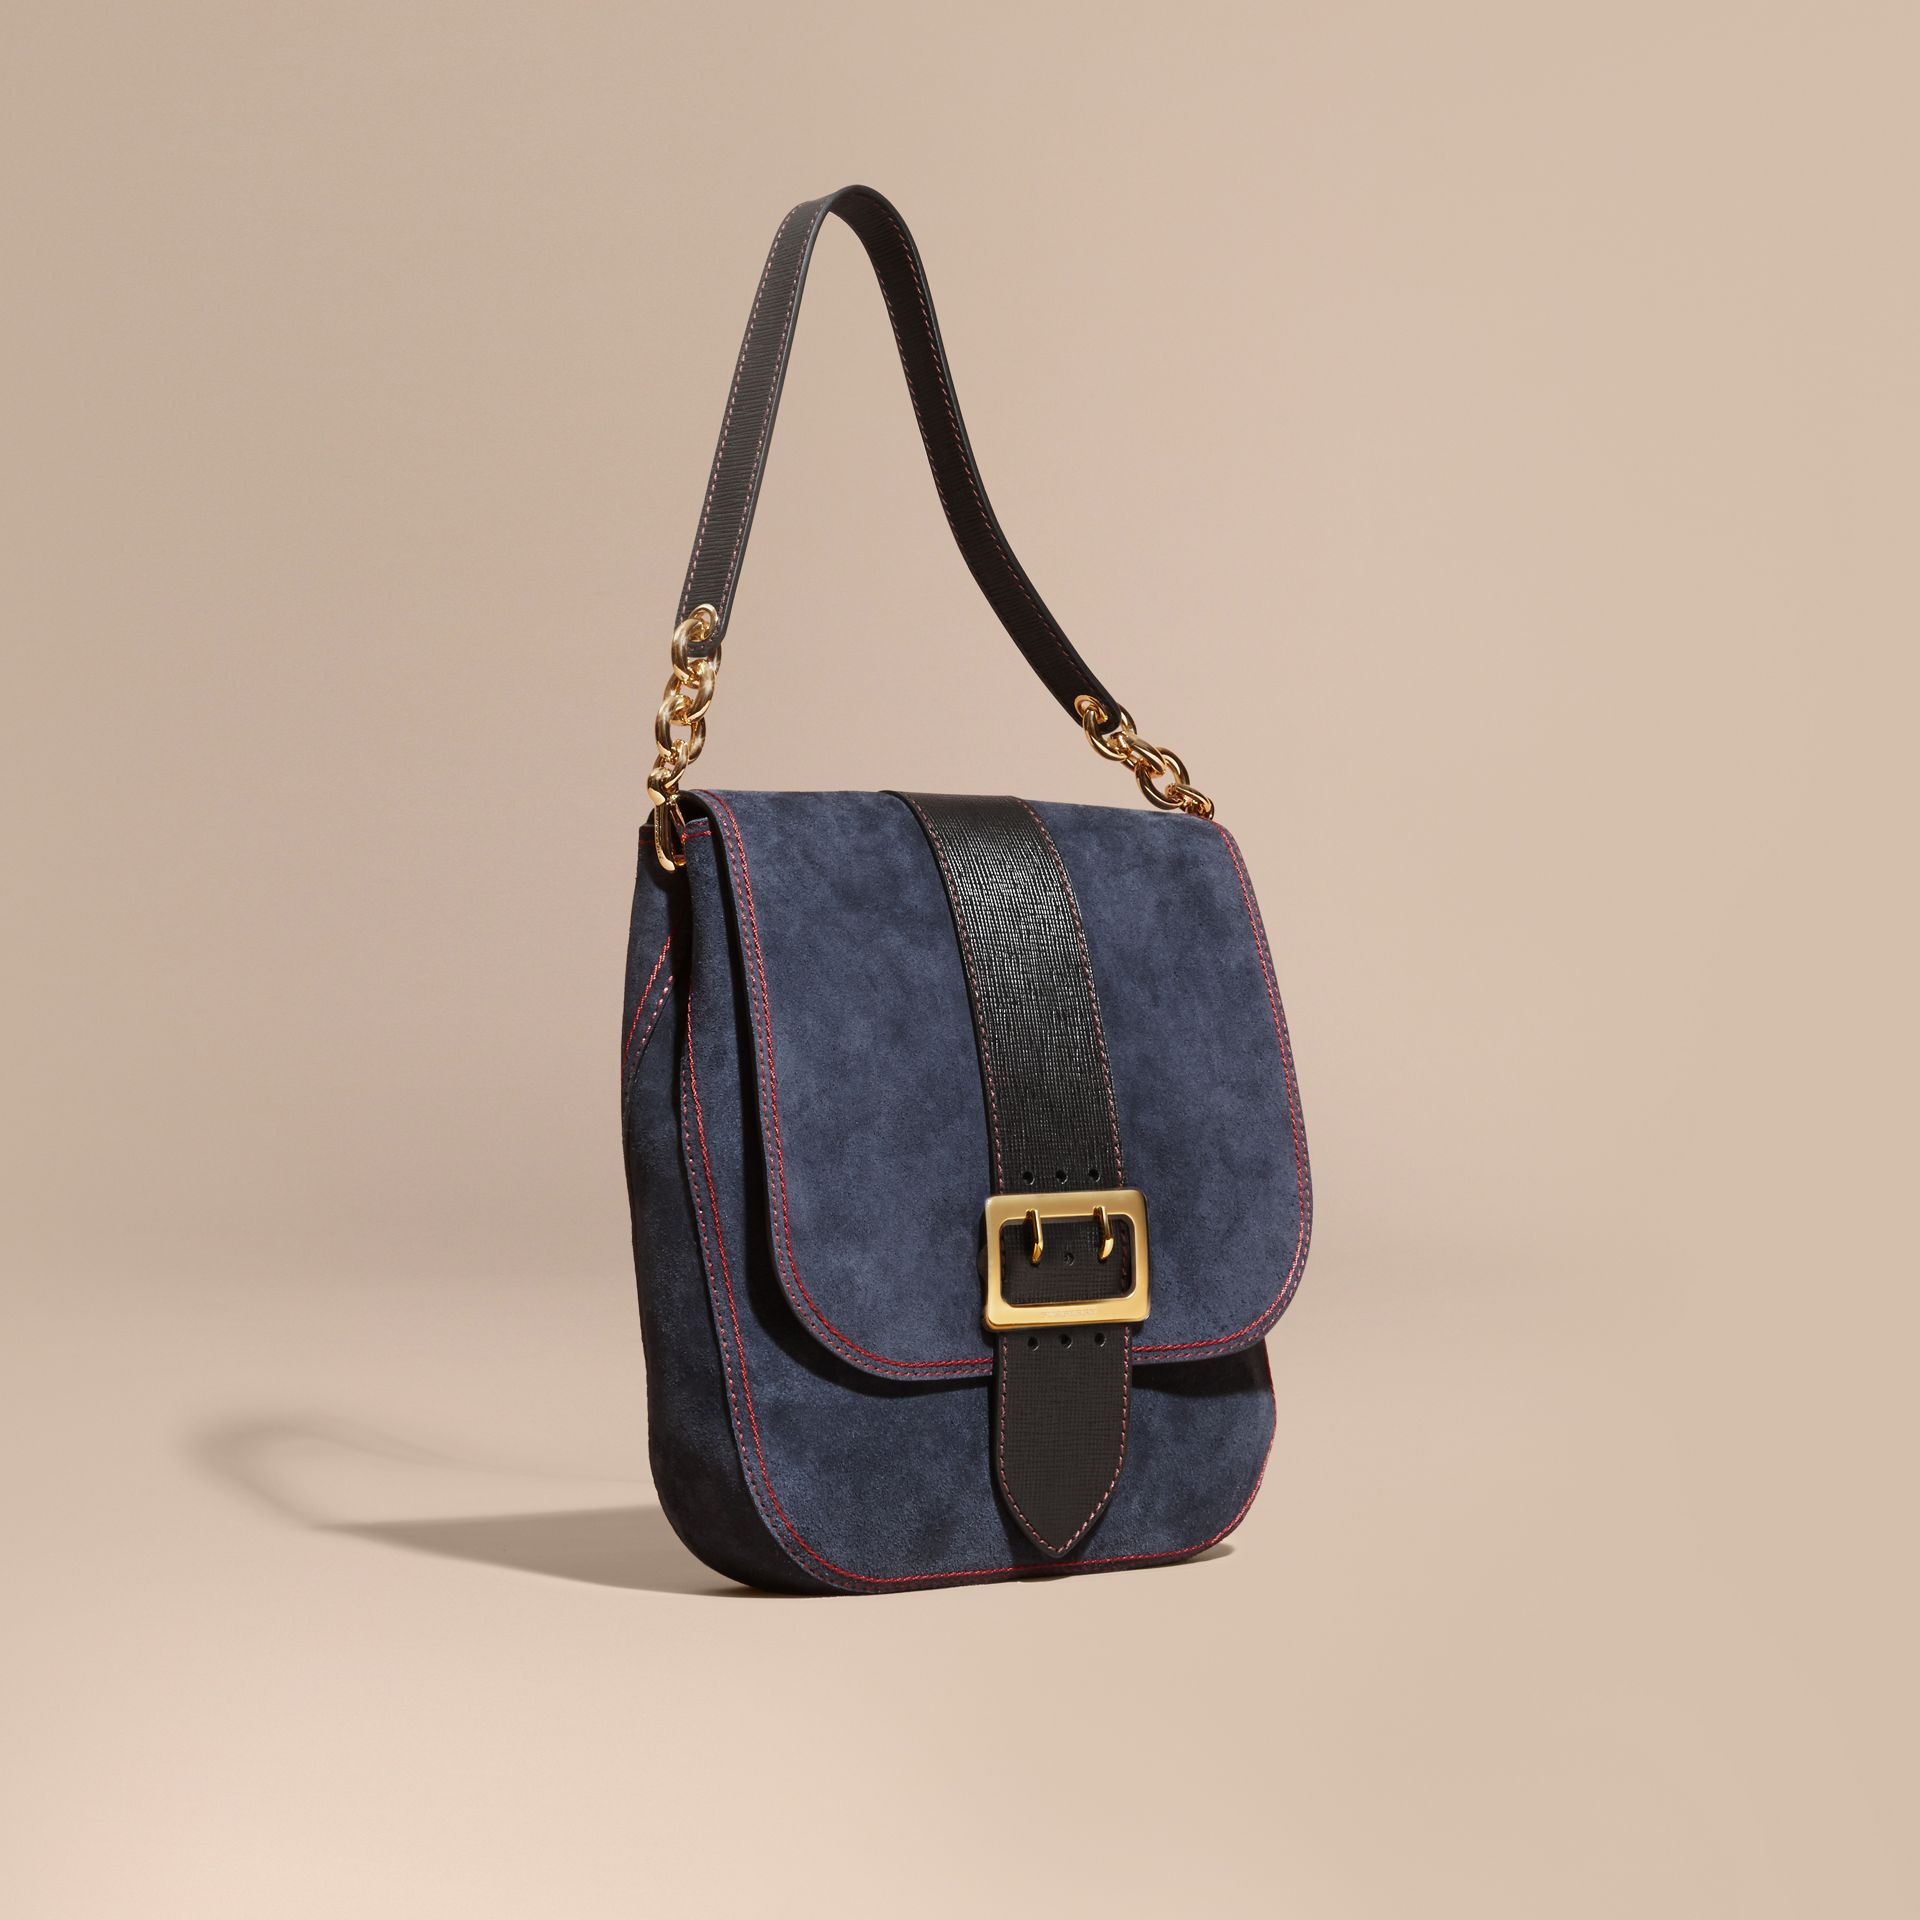 Navy The Buckle Satchel in Suede with Topstitching Navy - gallery image 1